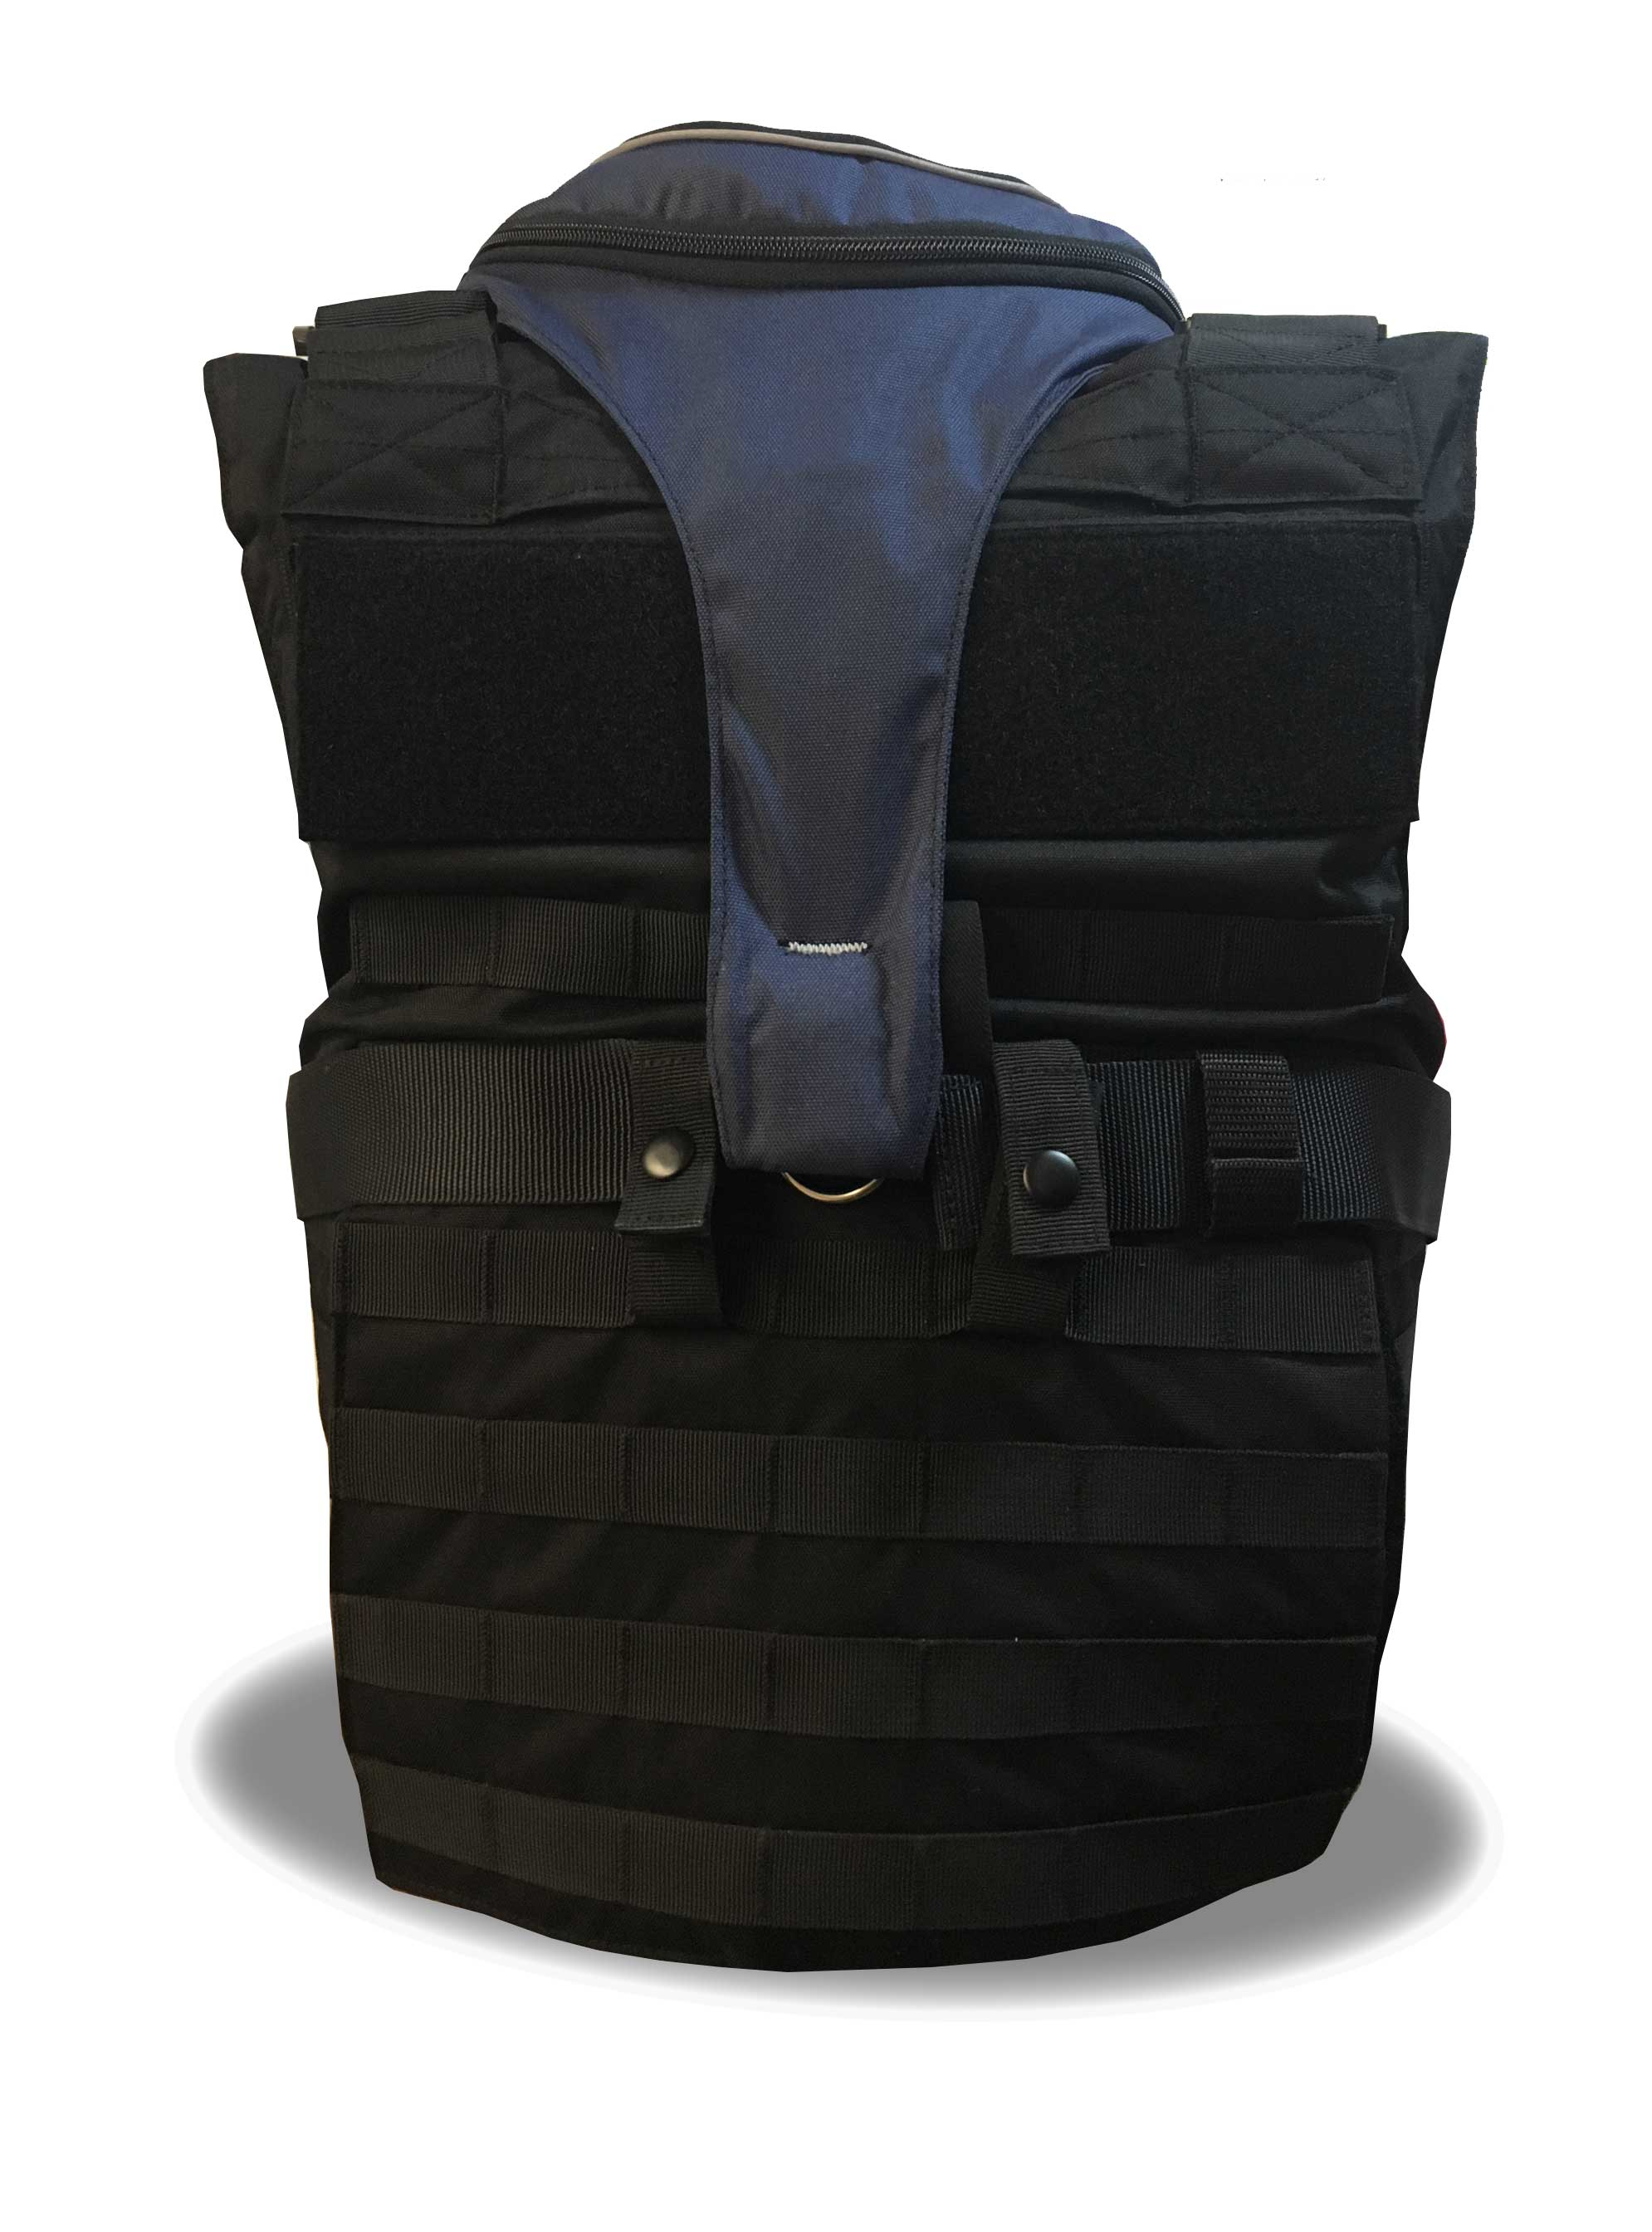 42026de6f7a VestGuard Overt Tactical Ballistic Bodyarmour Vest NIJ level 3a Military  Police Press Media Security Close Protection Special Forces - www.vestguard .com